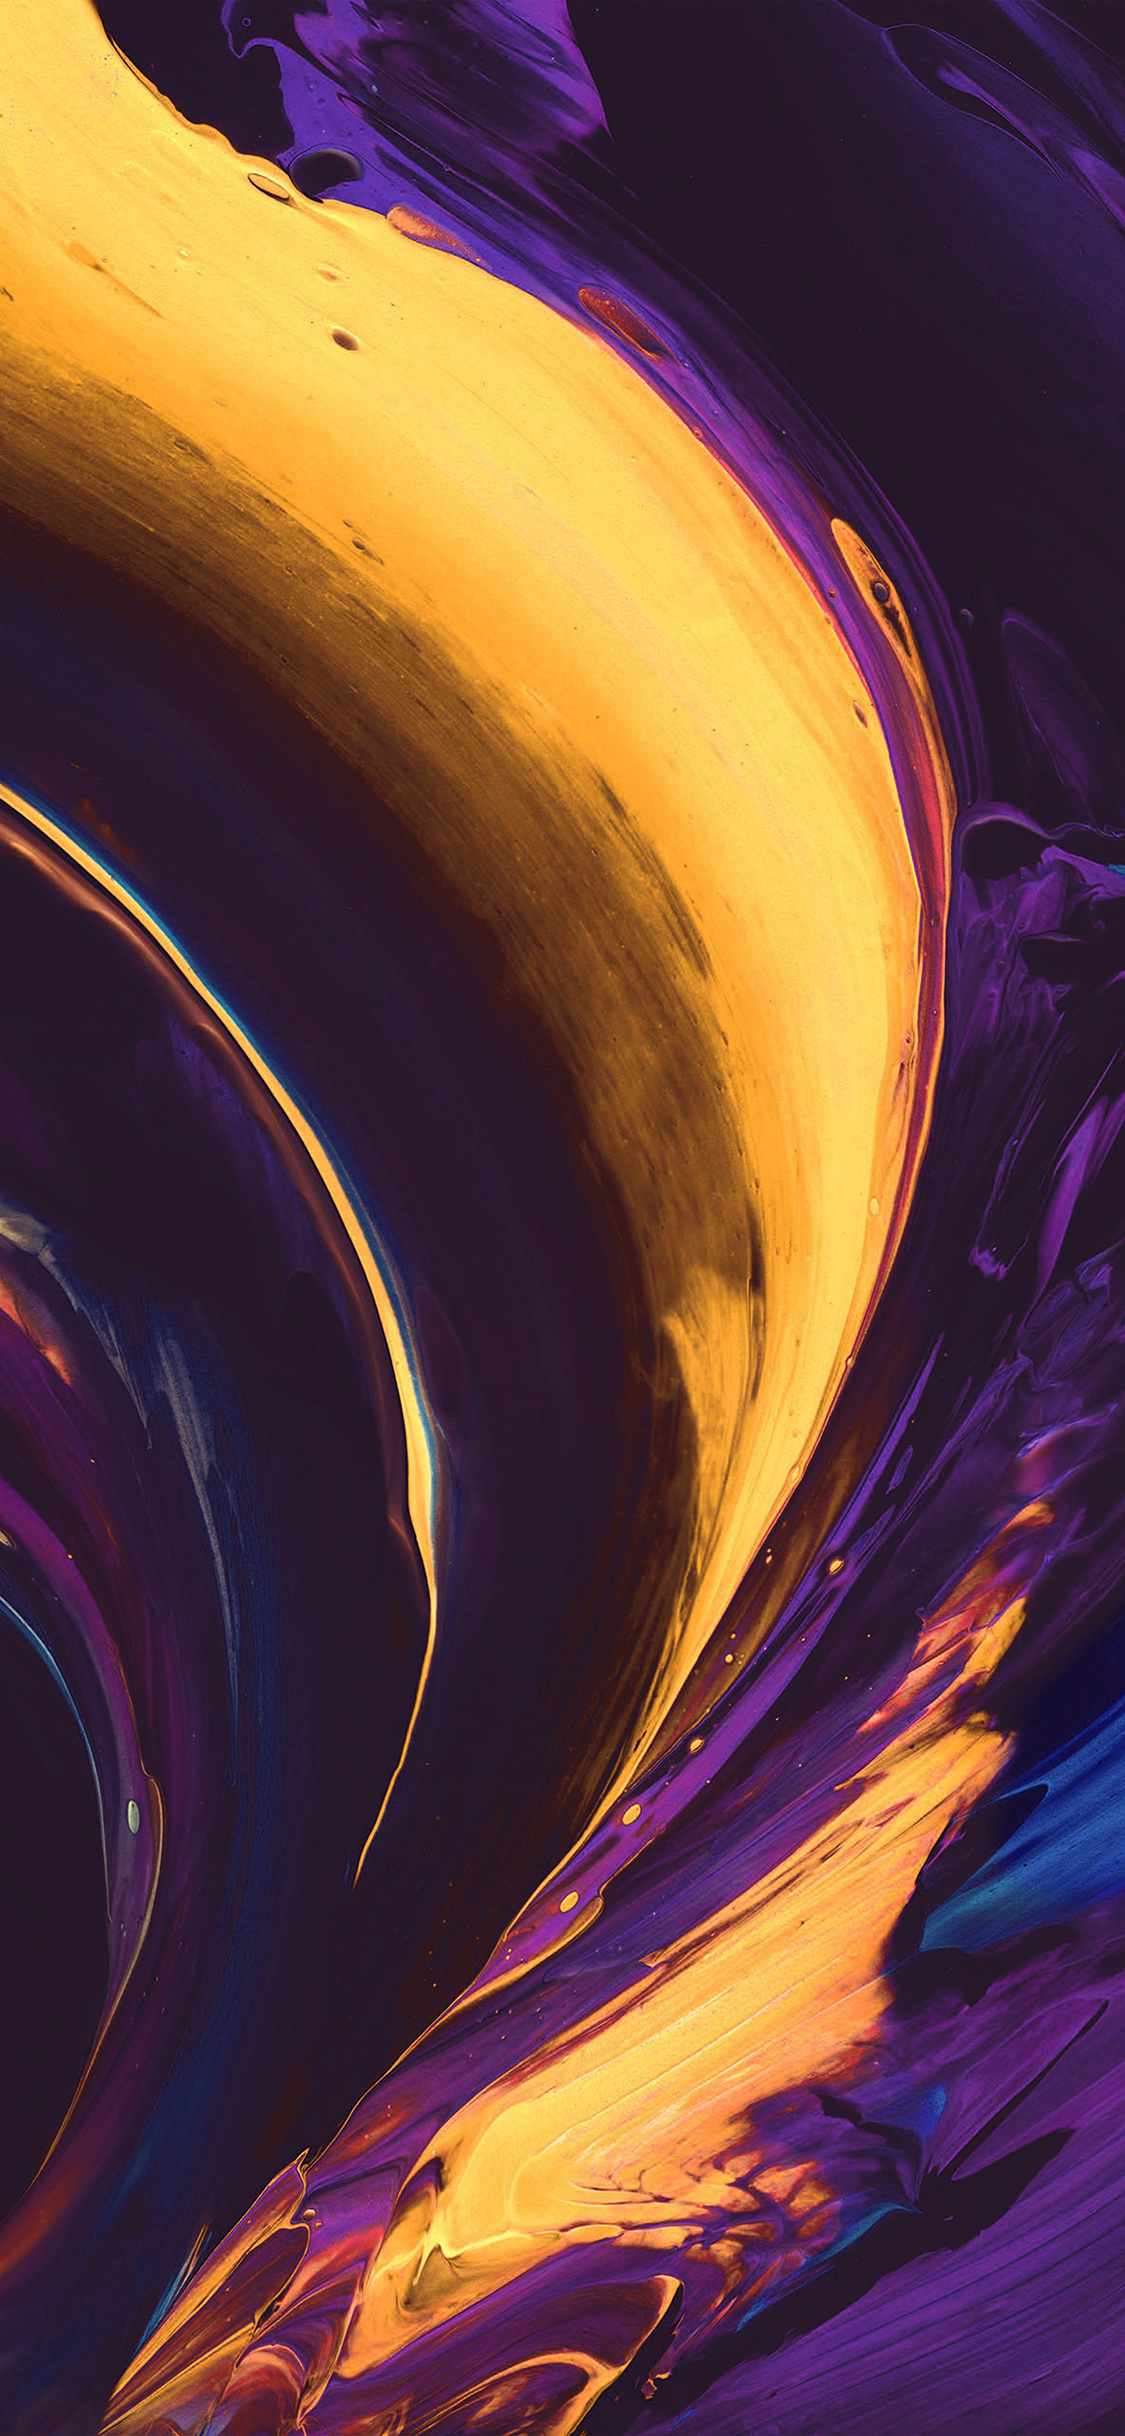 iPhonexpapers.com-Apple-iPhone-wallpaper-vs33-htc-abstract-art-paint-pattern-purple-yellow-color